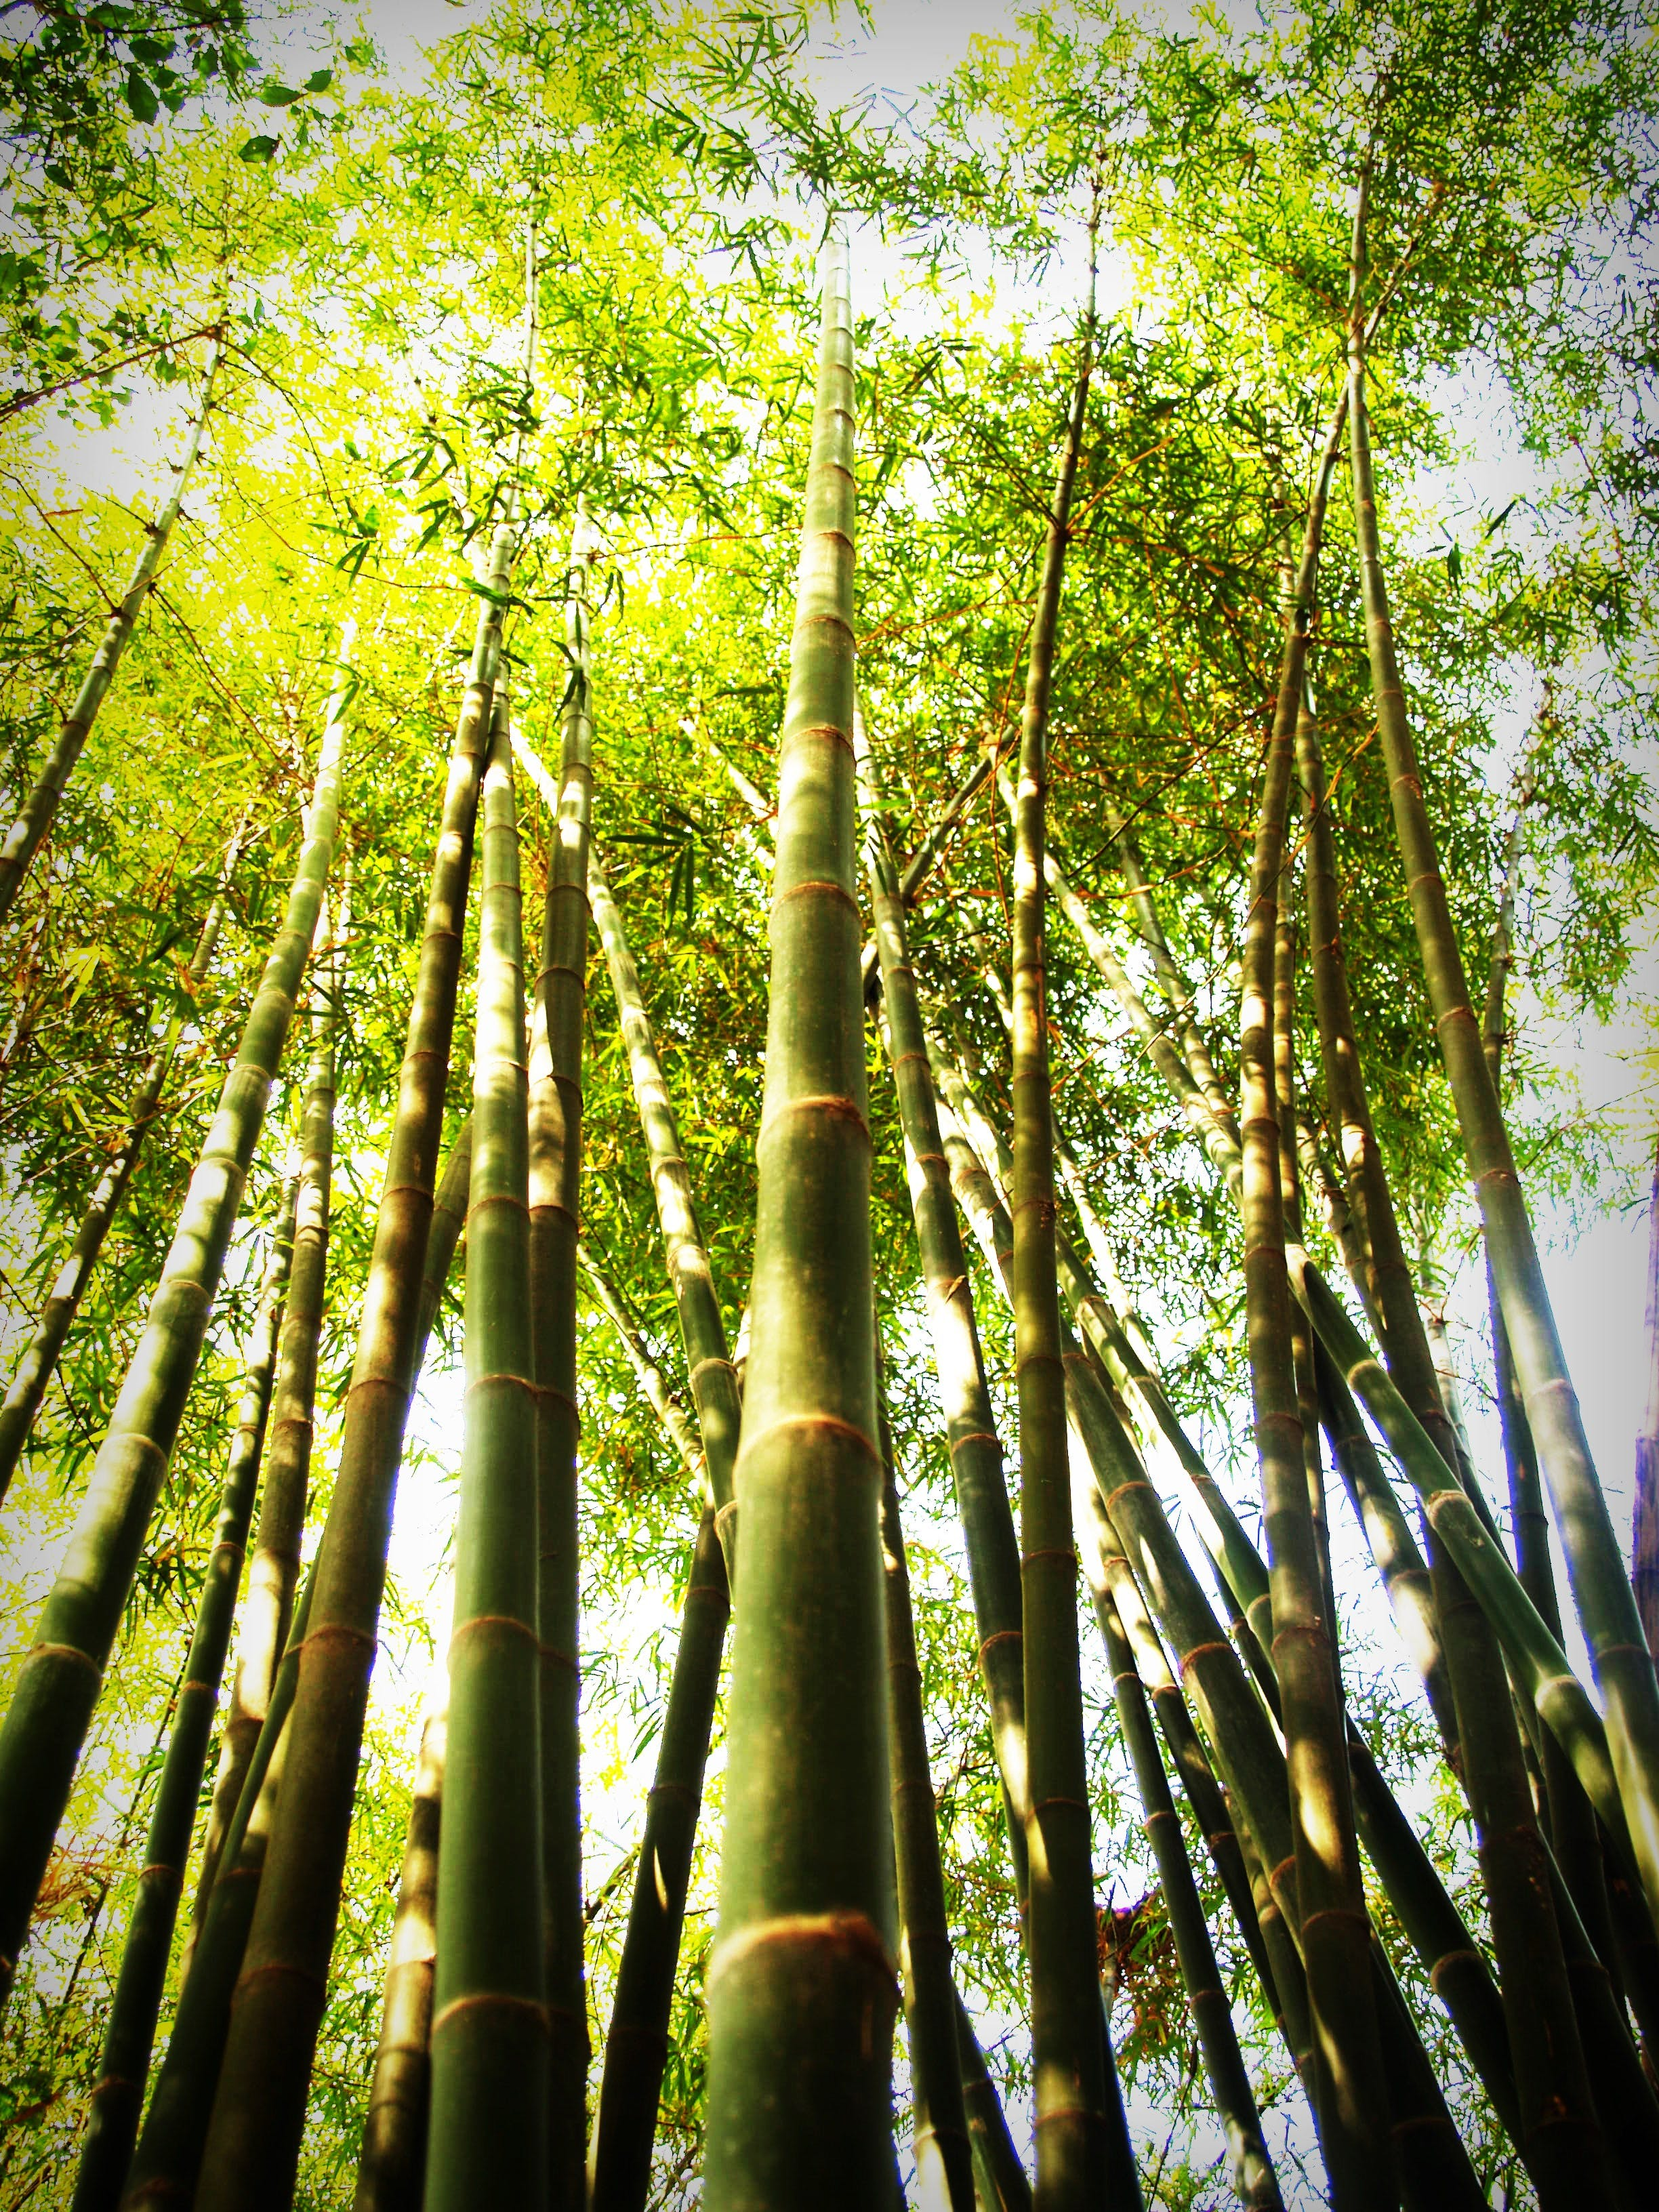 Worm-view of Bamboo Trees